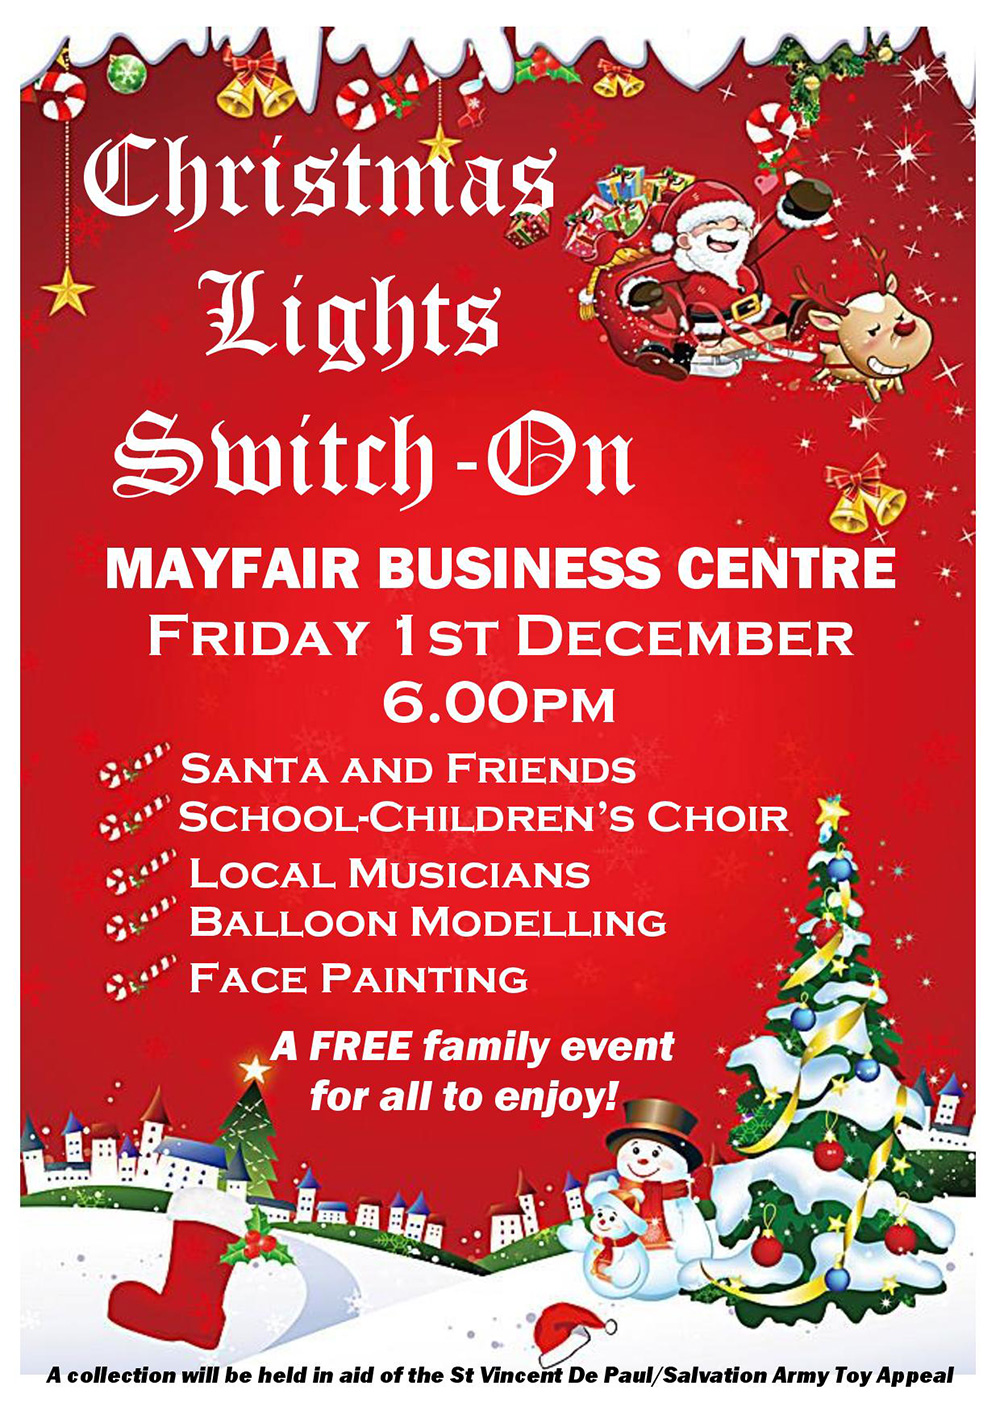 Christmas Lights Switch on Mayfair